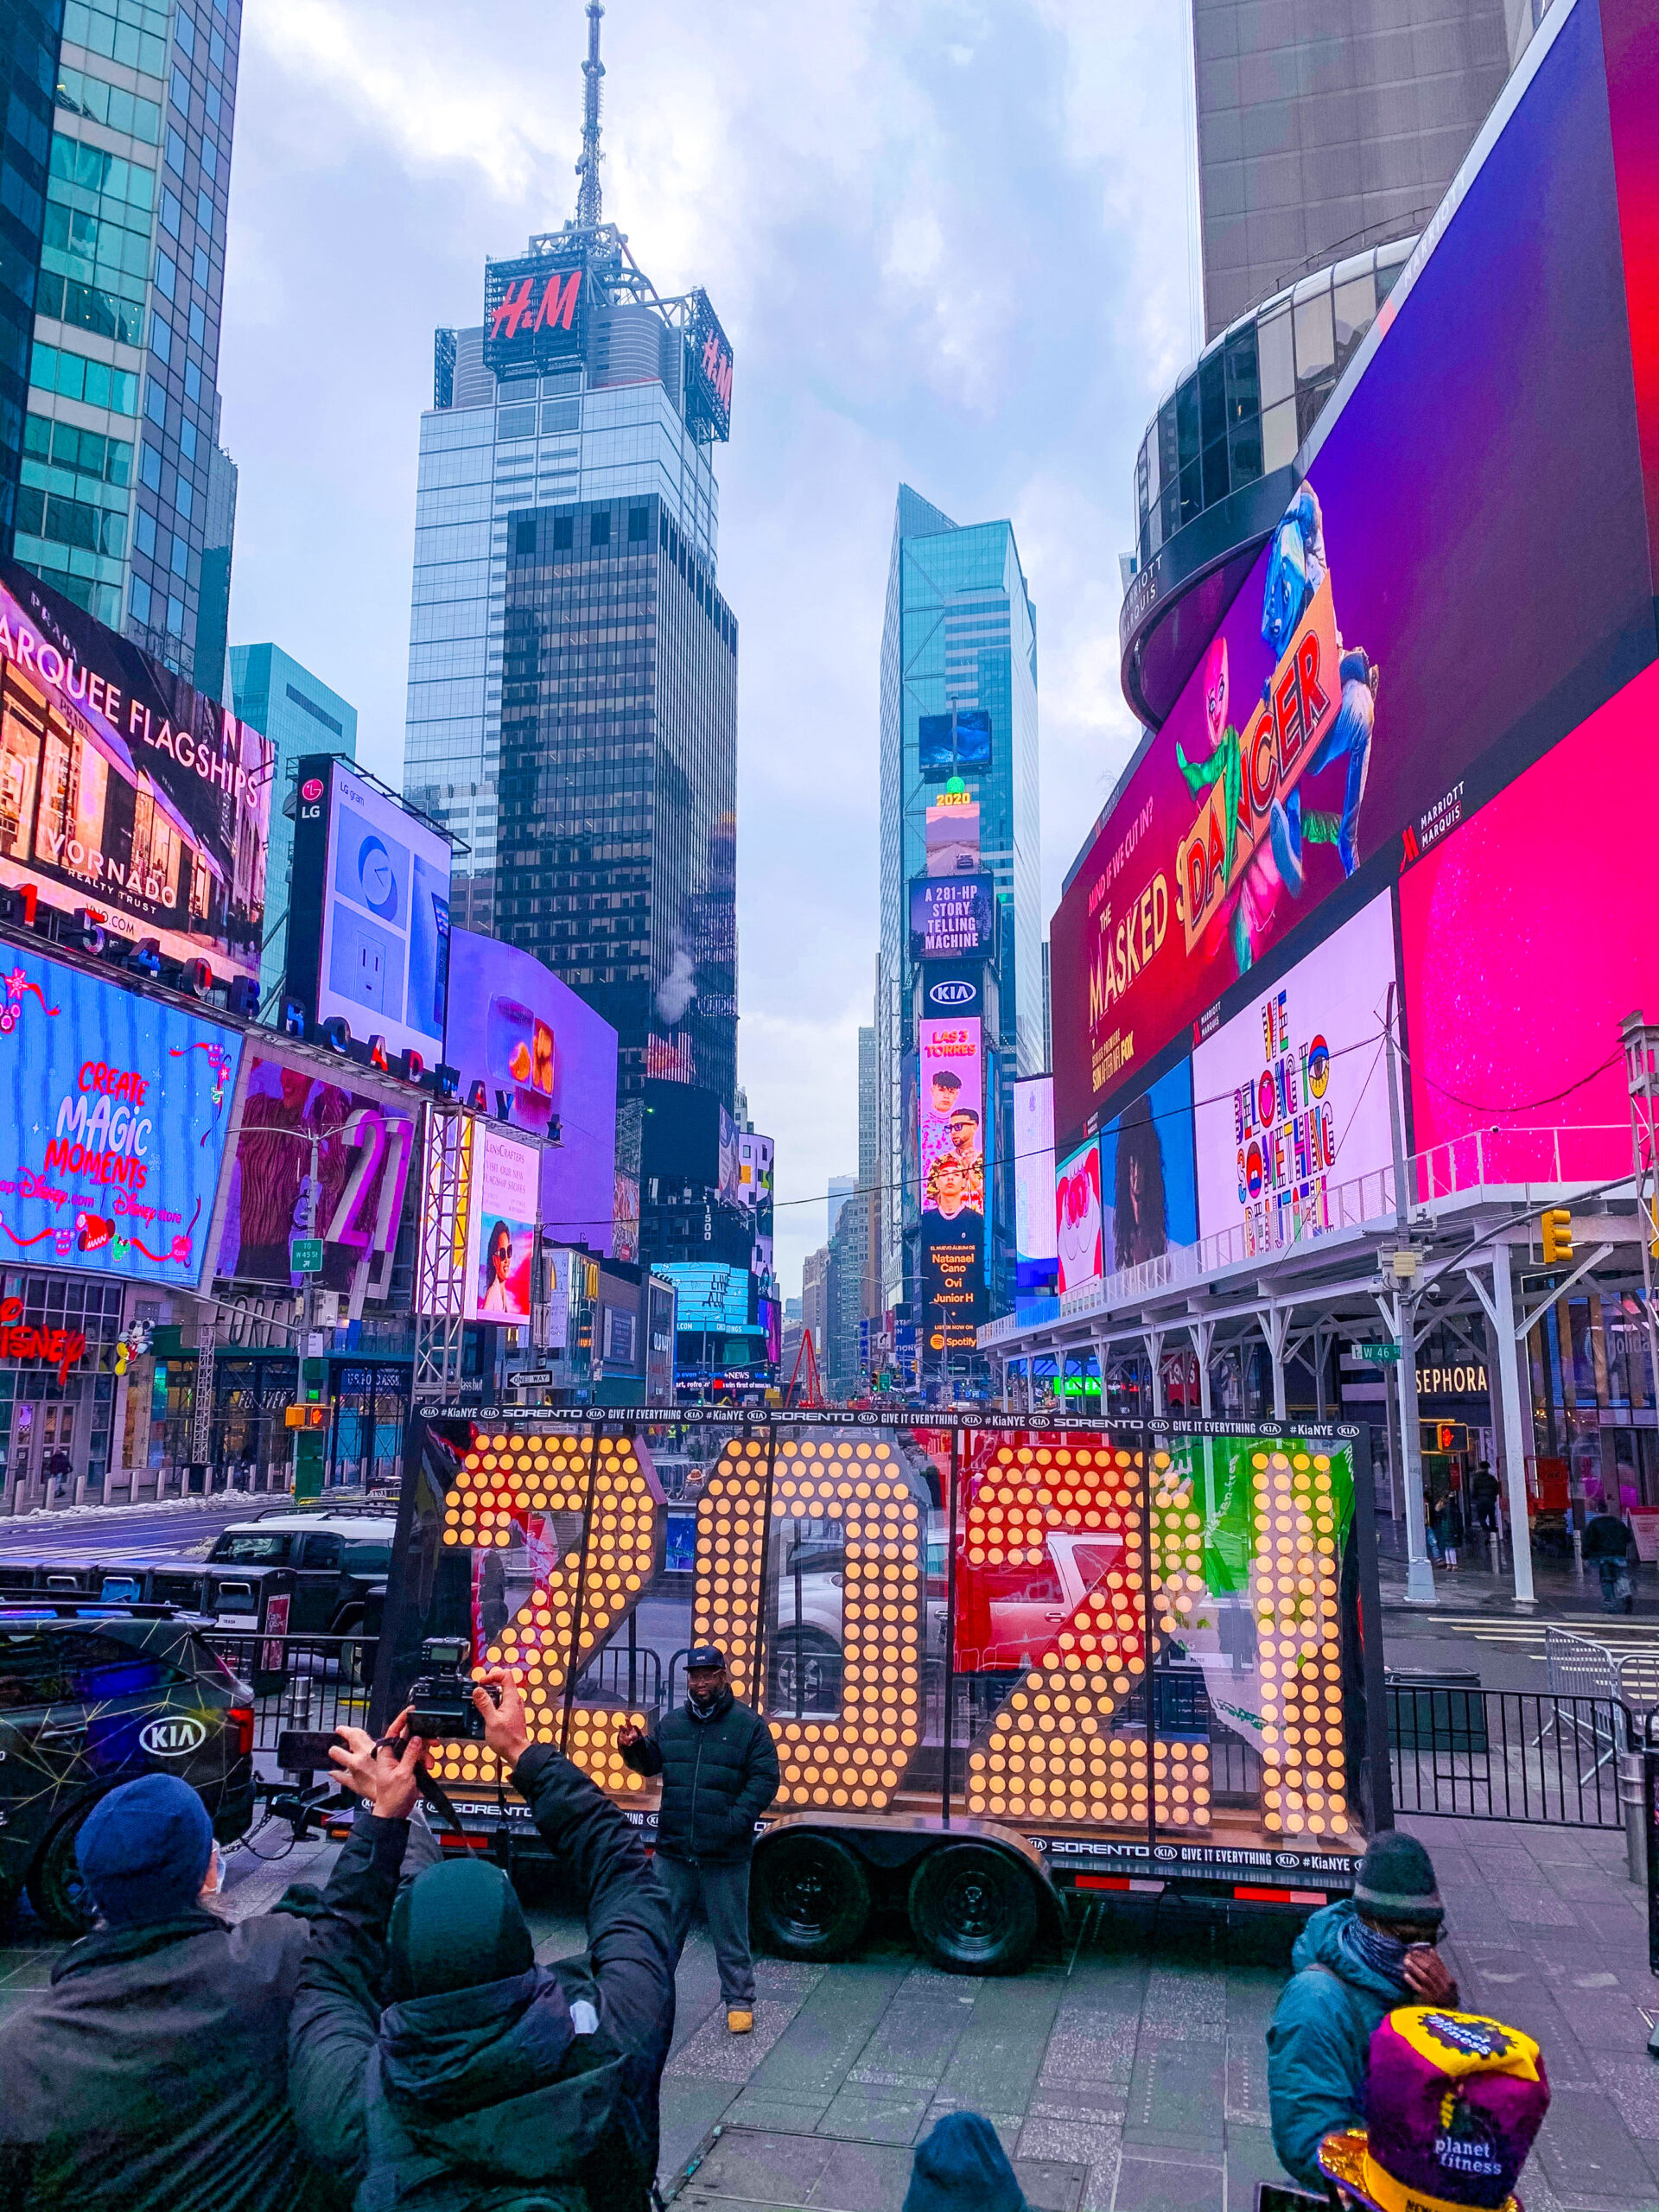 Natale a New York, 2021 numerals